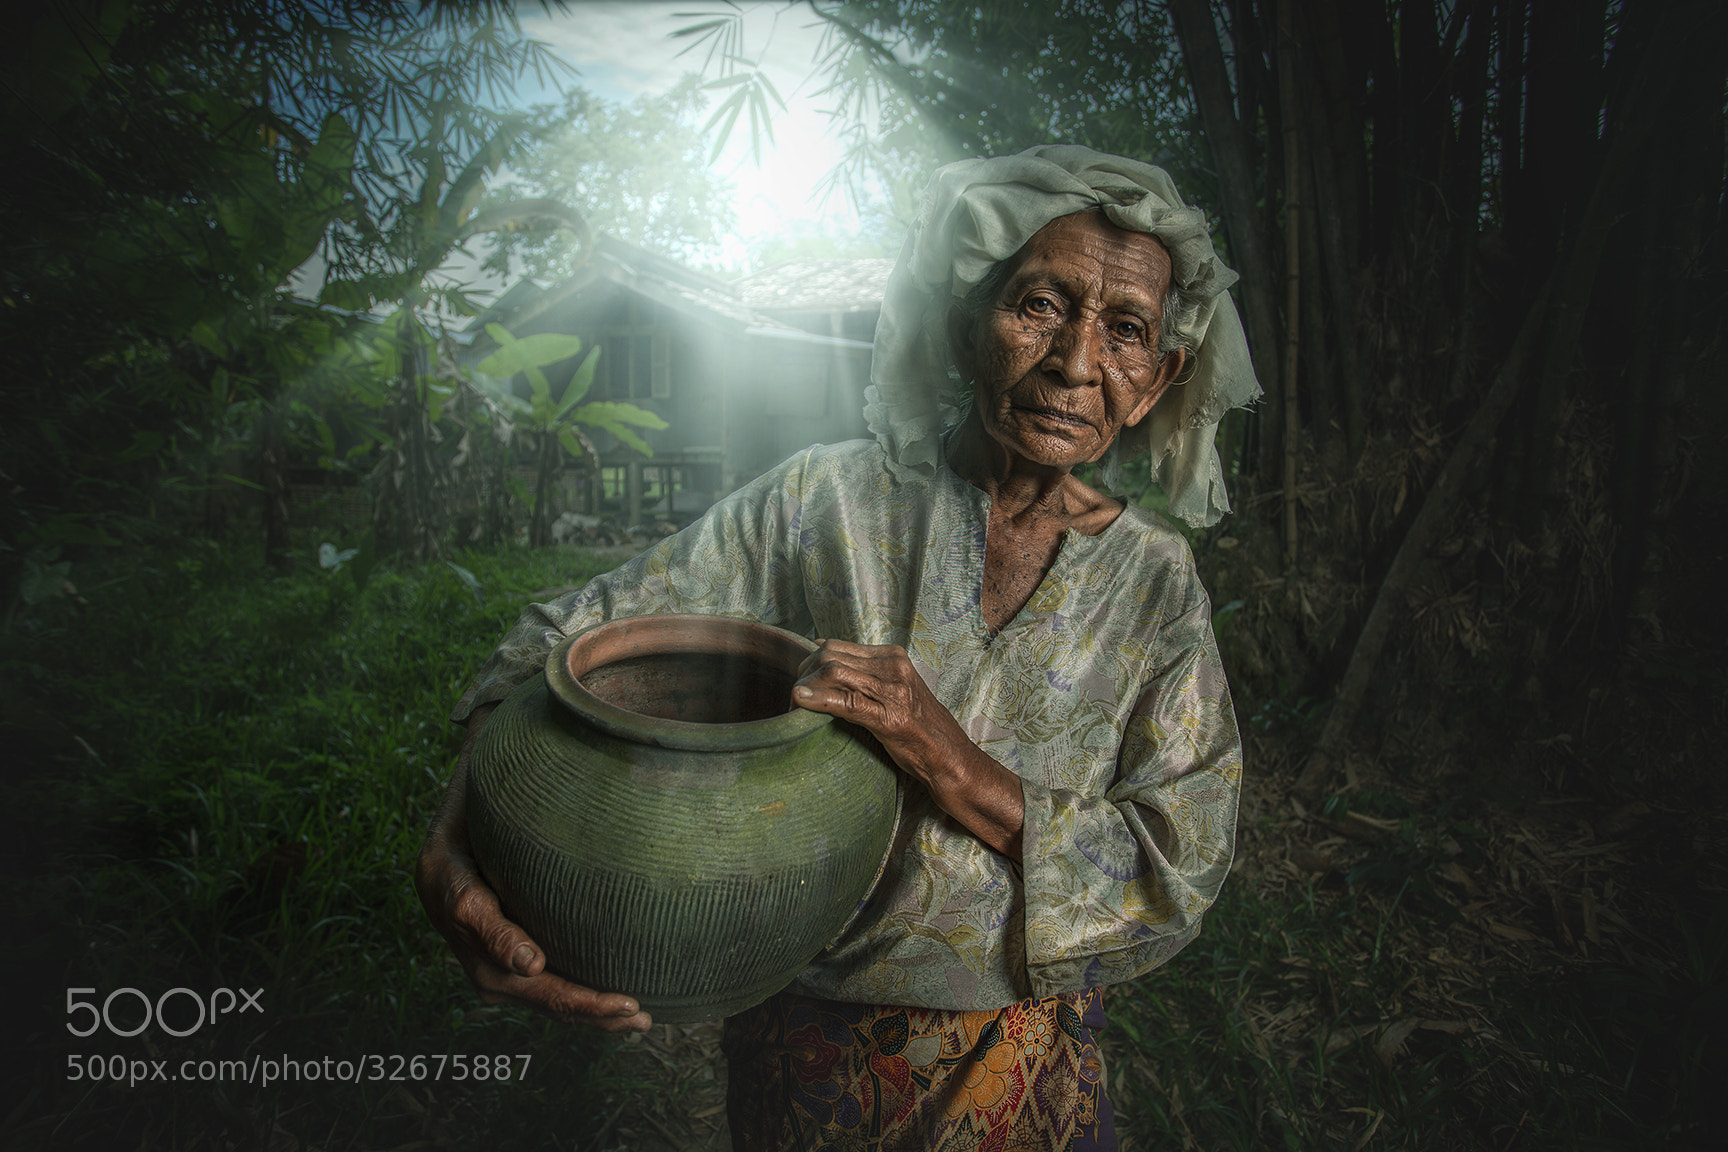 Photograph STARTING WORK by abe less on 500px